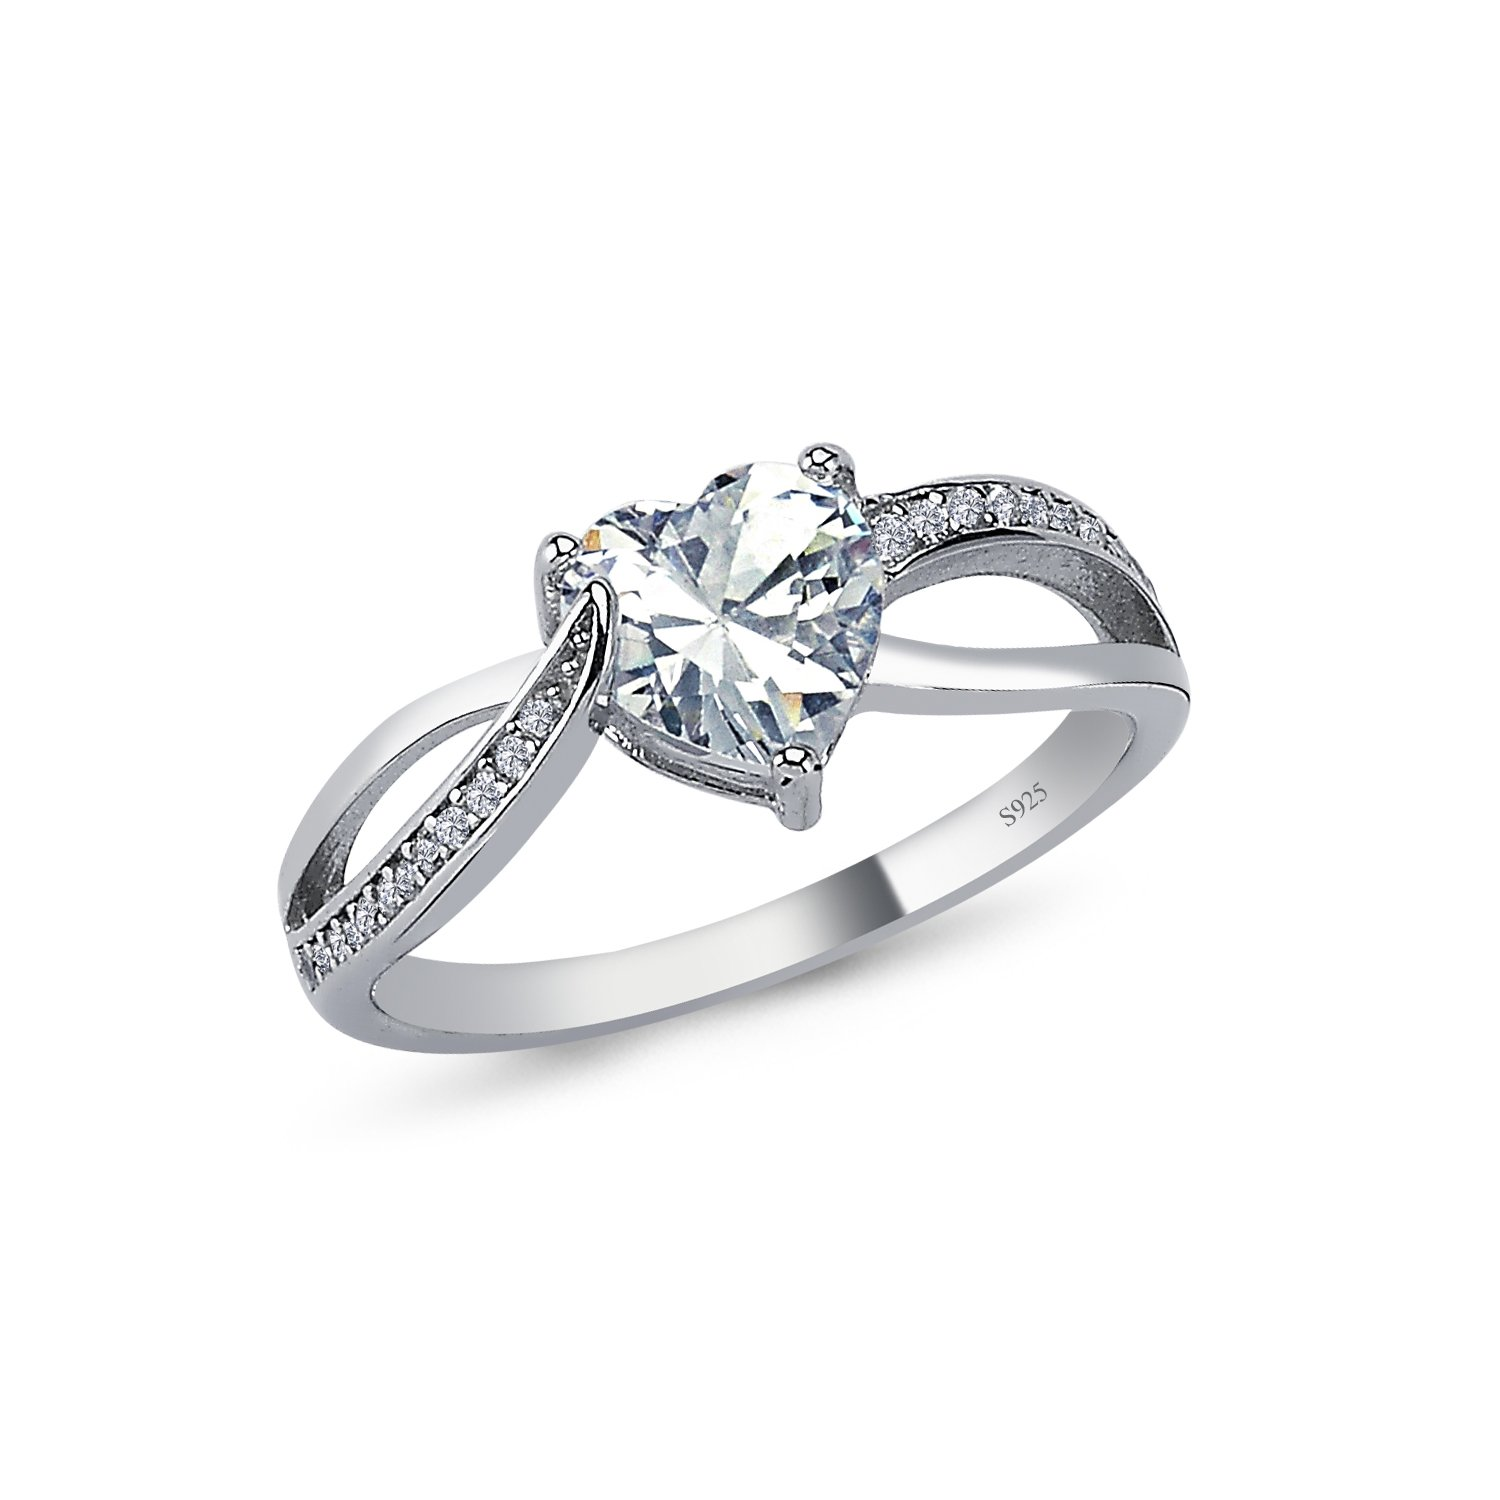 925 Solid Sterling Silver 7MM Cushion AAAAA+ Gem Grade Quality HEART and INFINITY Design Total 1.25 CARAT Bridal Sets Anniversary Promise Engagement Wedding CZ Ring Comfort Fit and Rhodium Plated